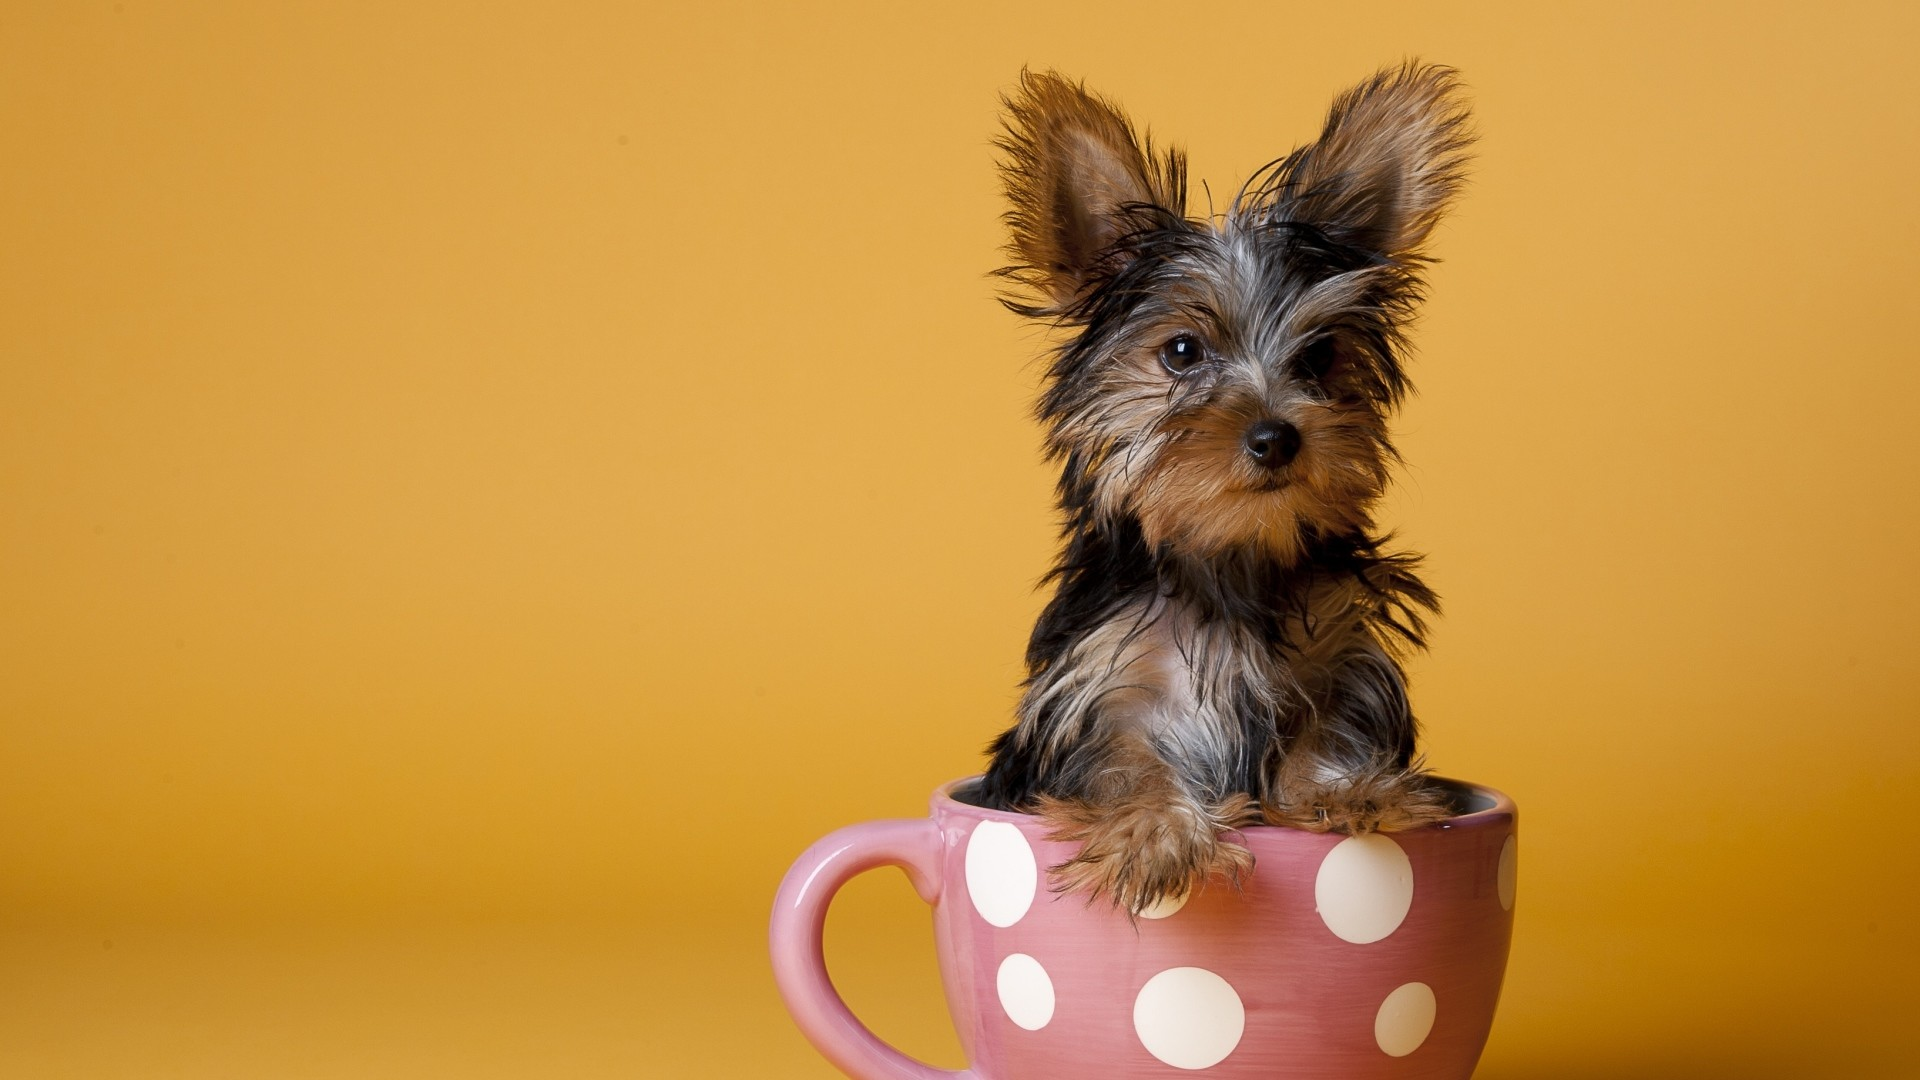 1920x1080 Preview wallpaper yorkshire terrier, cup, puppy, dog, sit